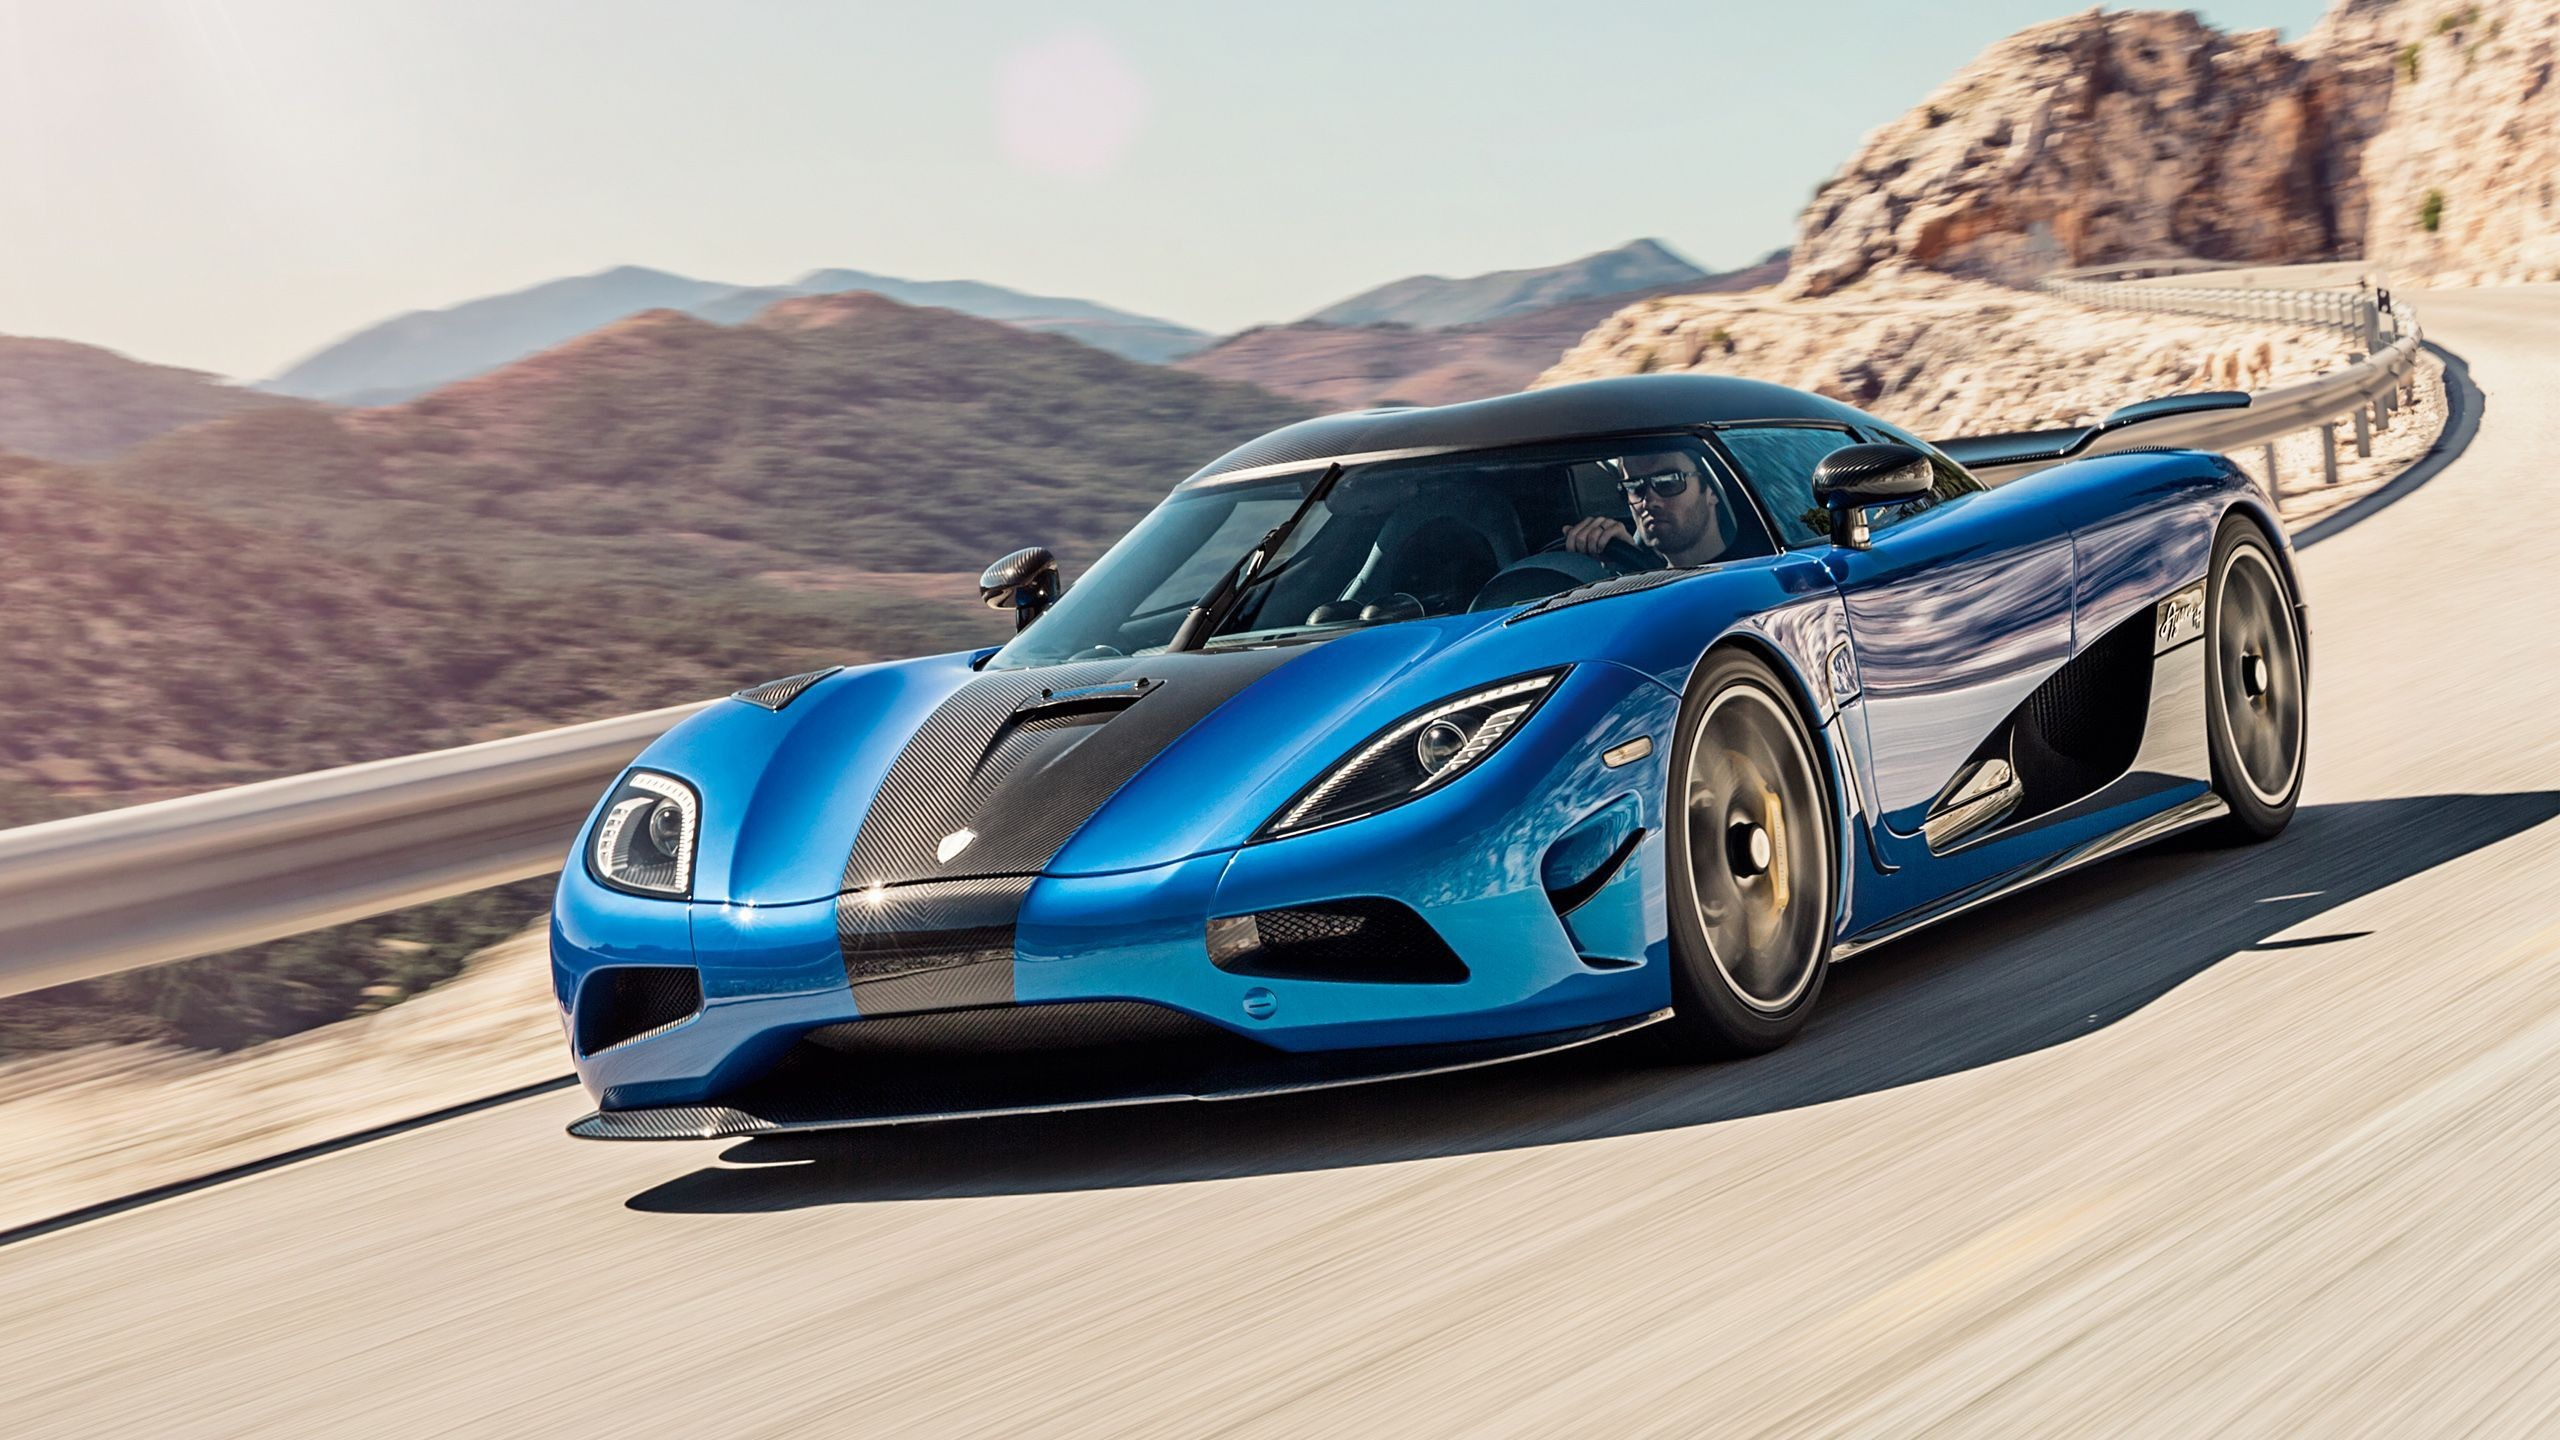 Koenigsegg Car Wallpapers – Page 1 – HD Car Wallpapers